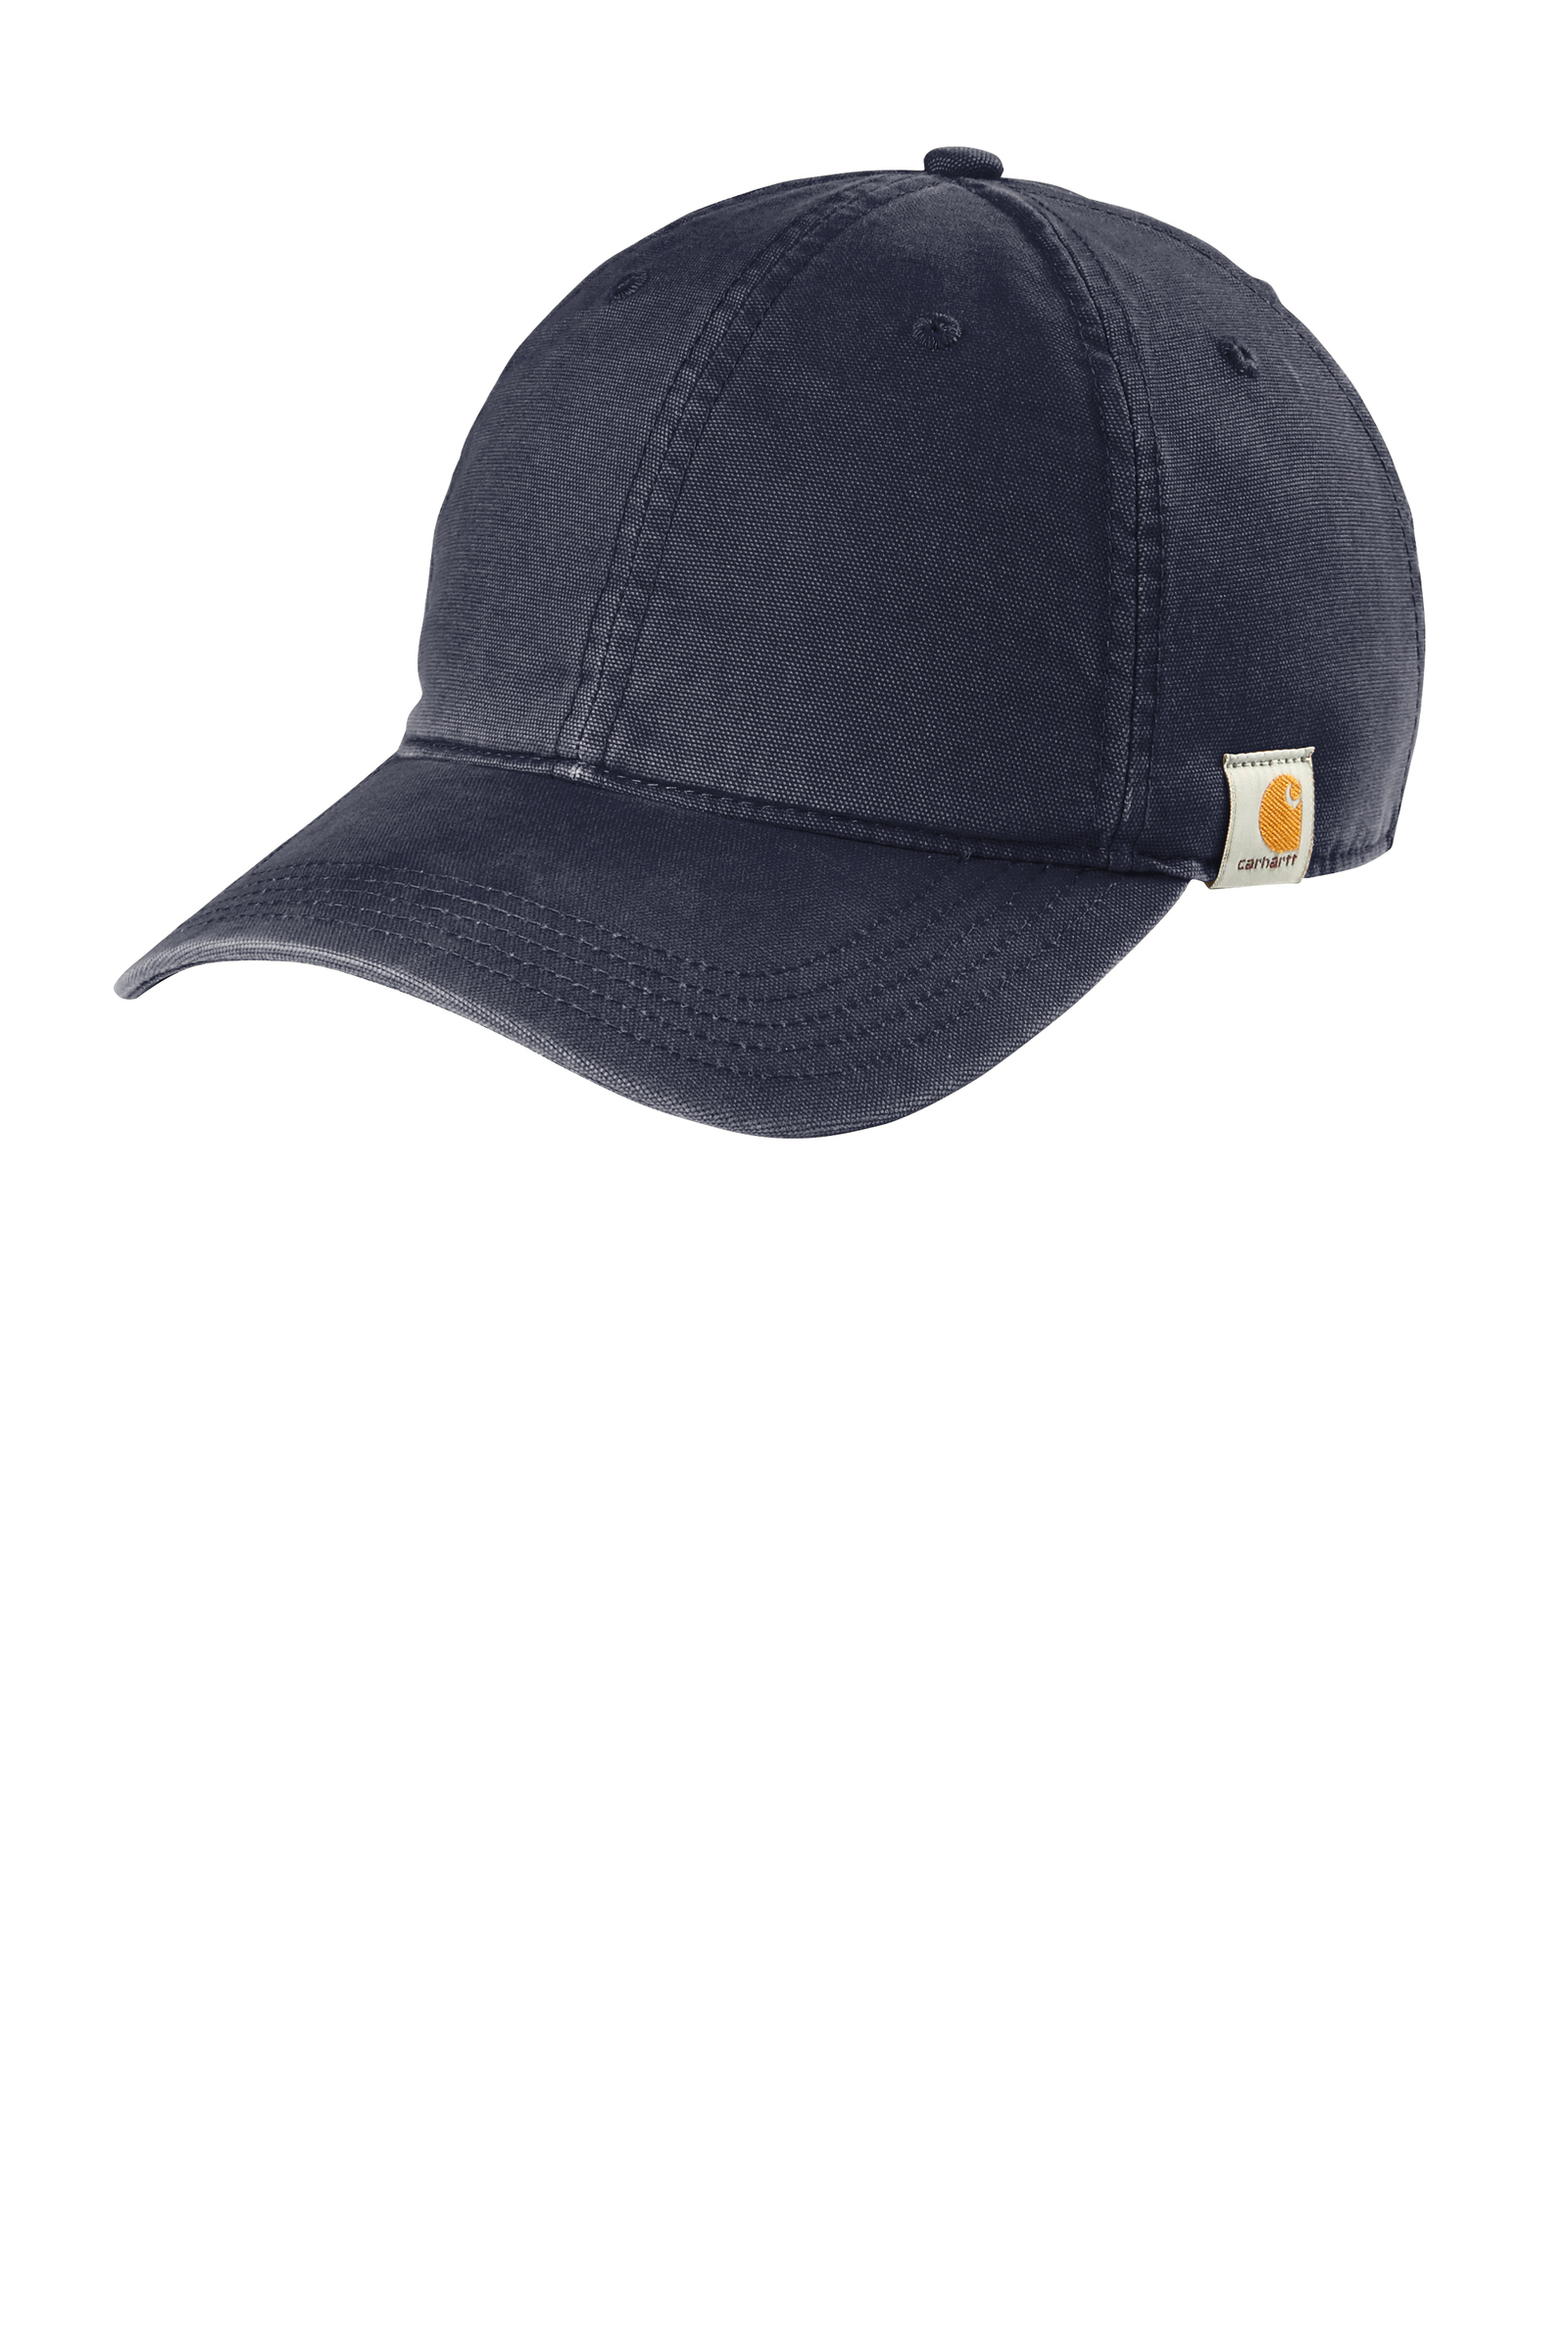 Carhartt Embroidered Cotton Canvas Cap